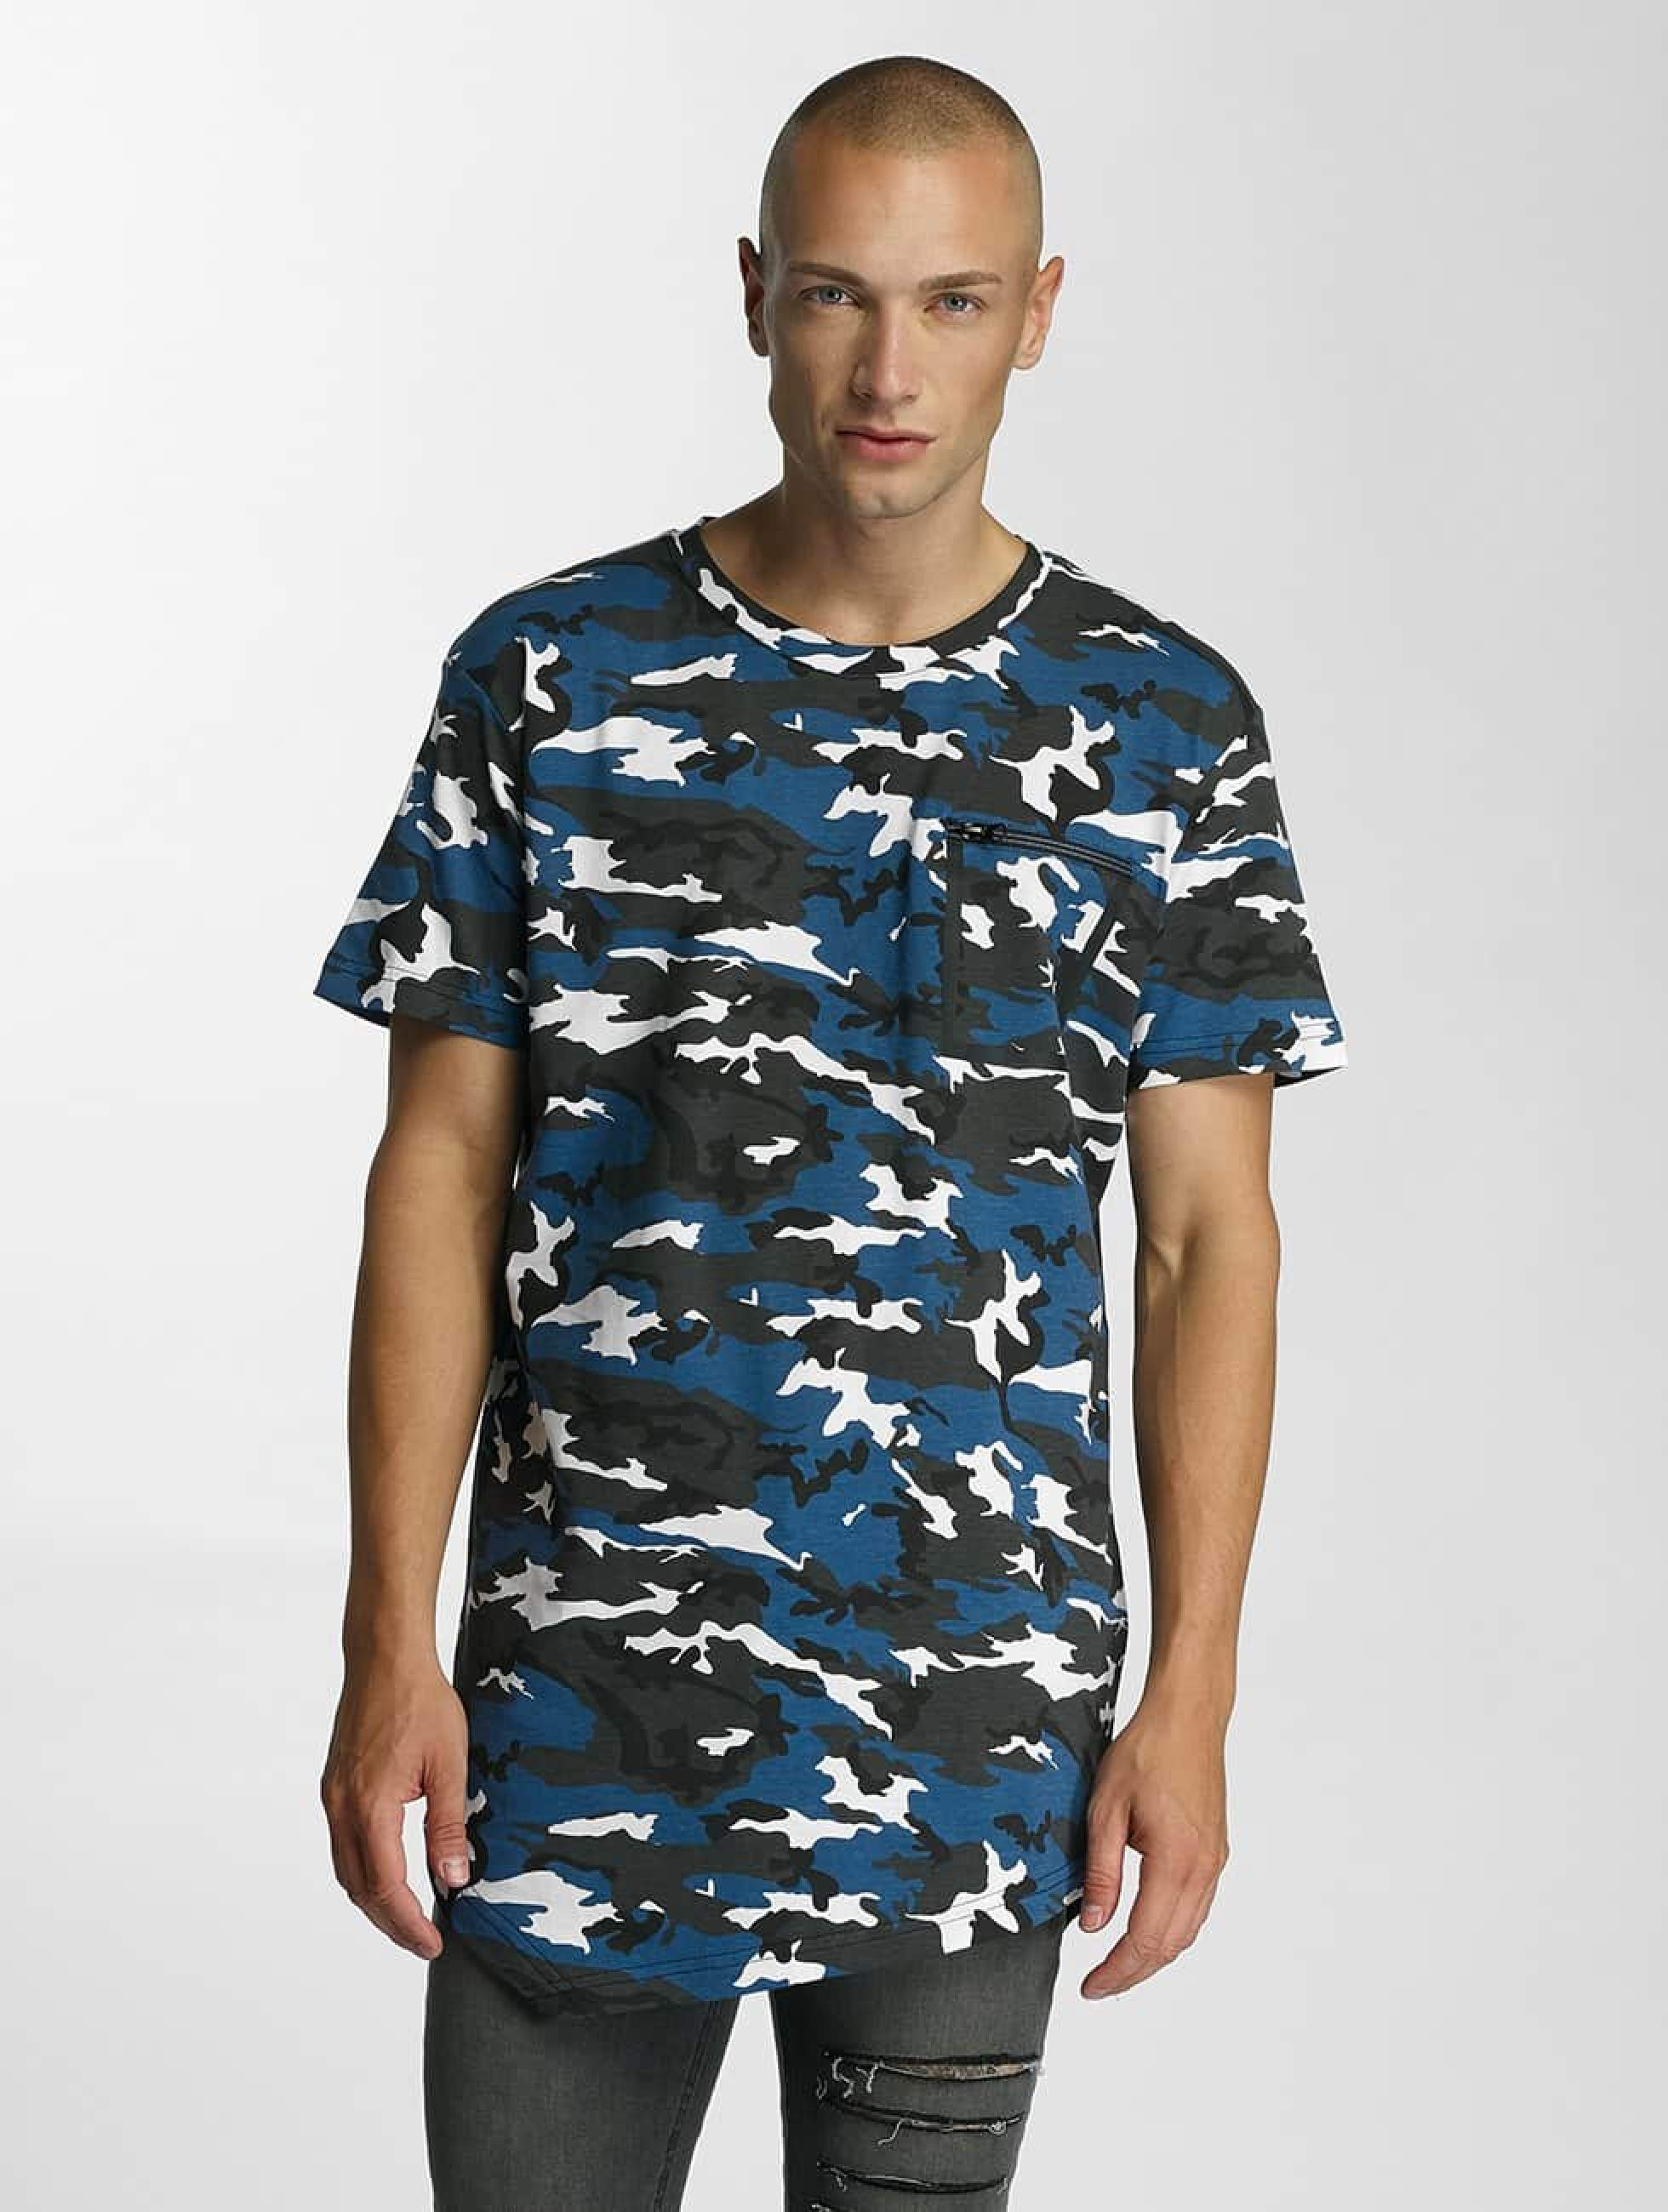 Bangastic / T-Shirt Camo in blue S